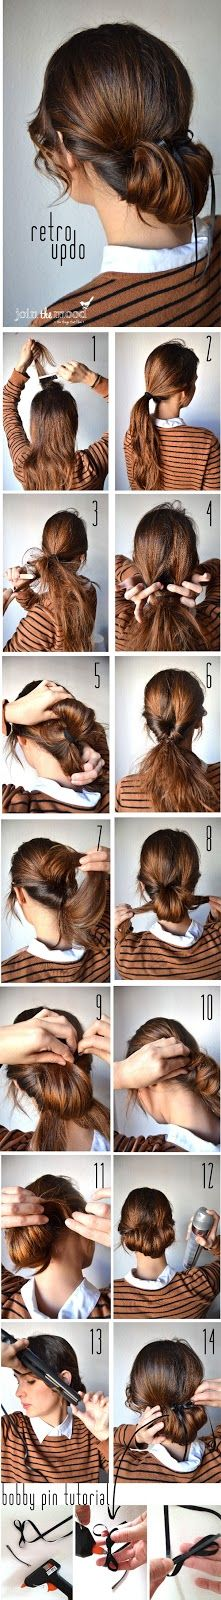 Updo hairstyles 29